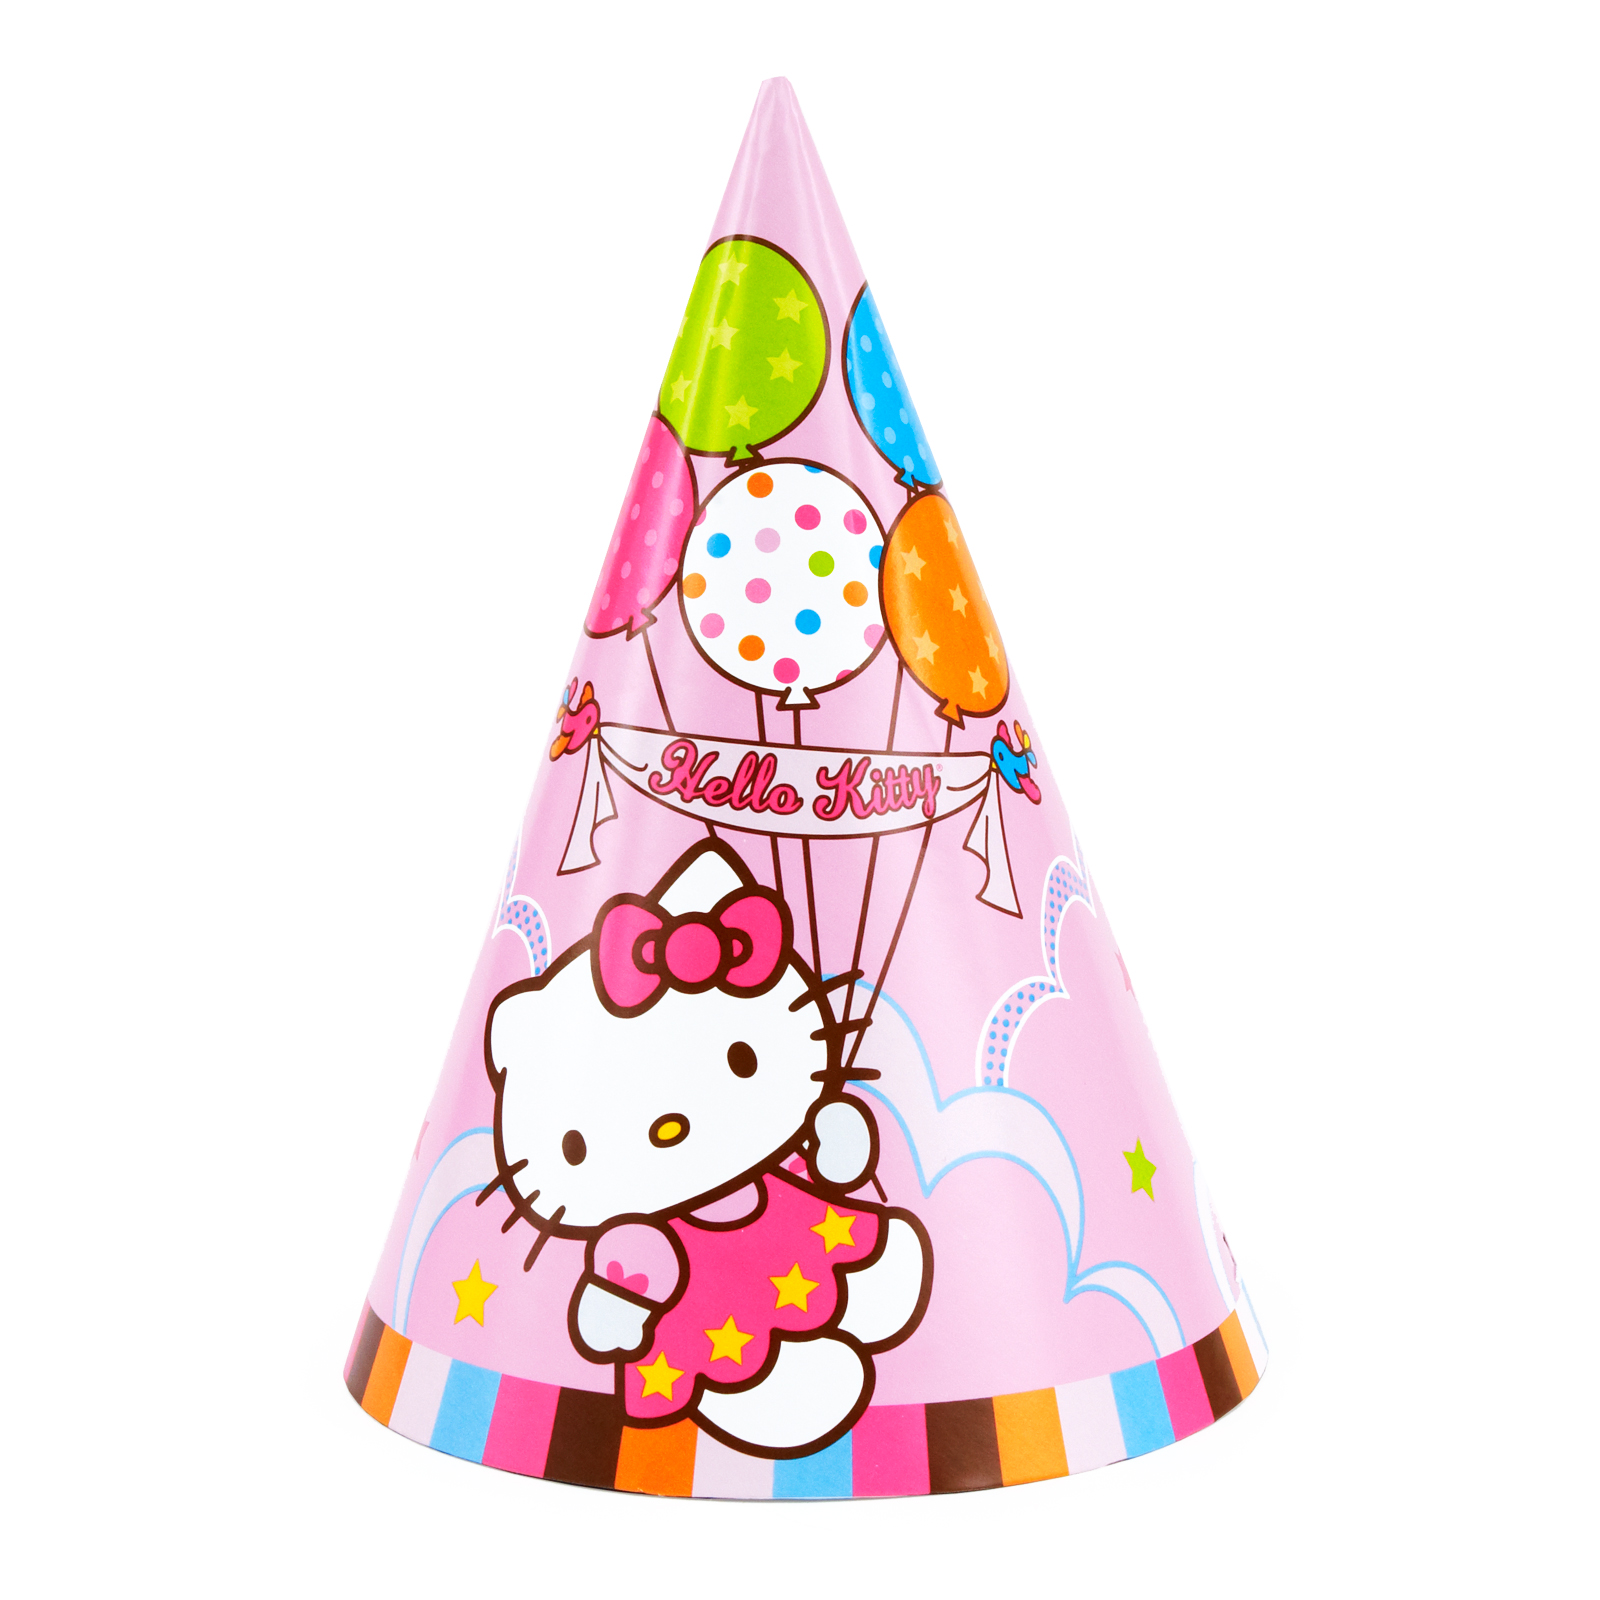 hight resolution of 20 images of birthday hats frees that you can download to clipart